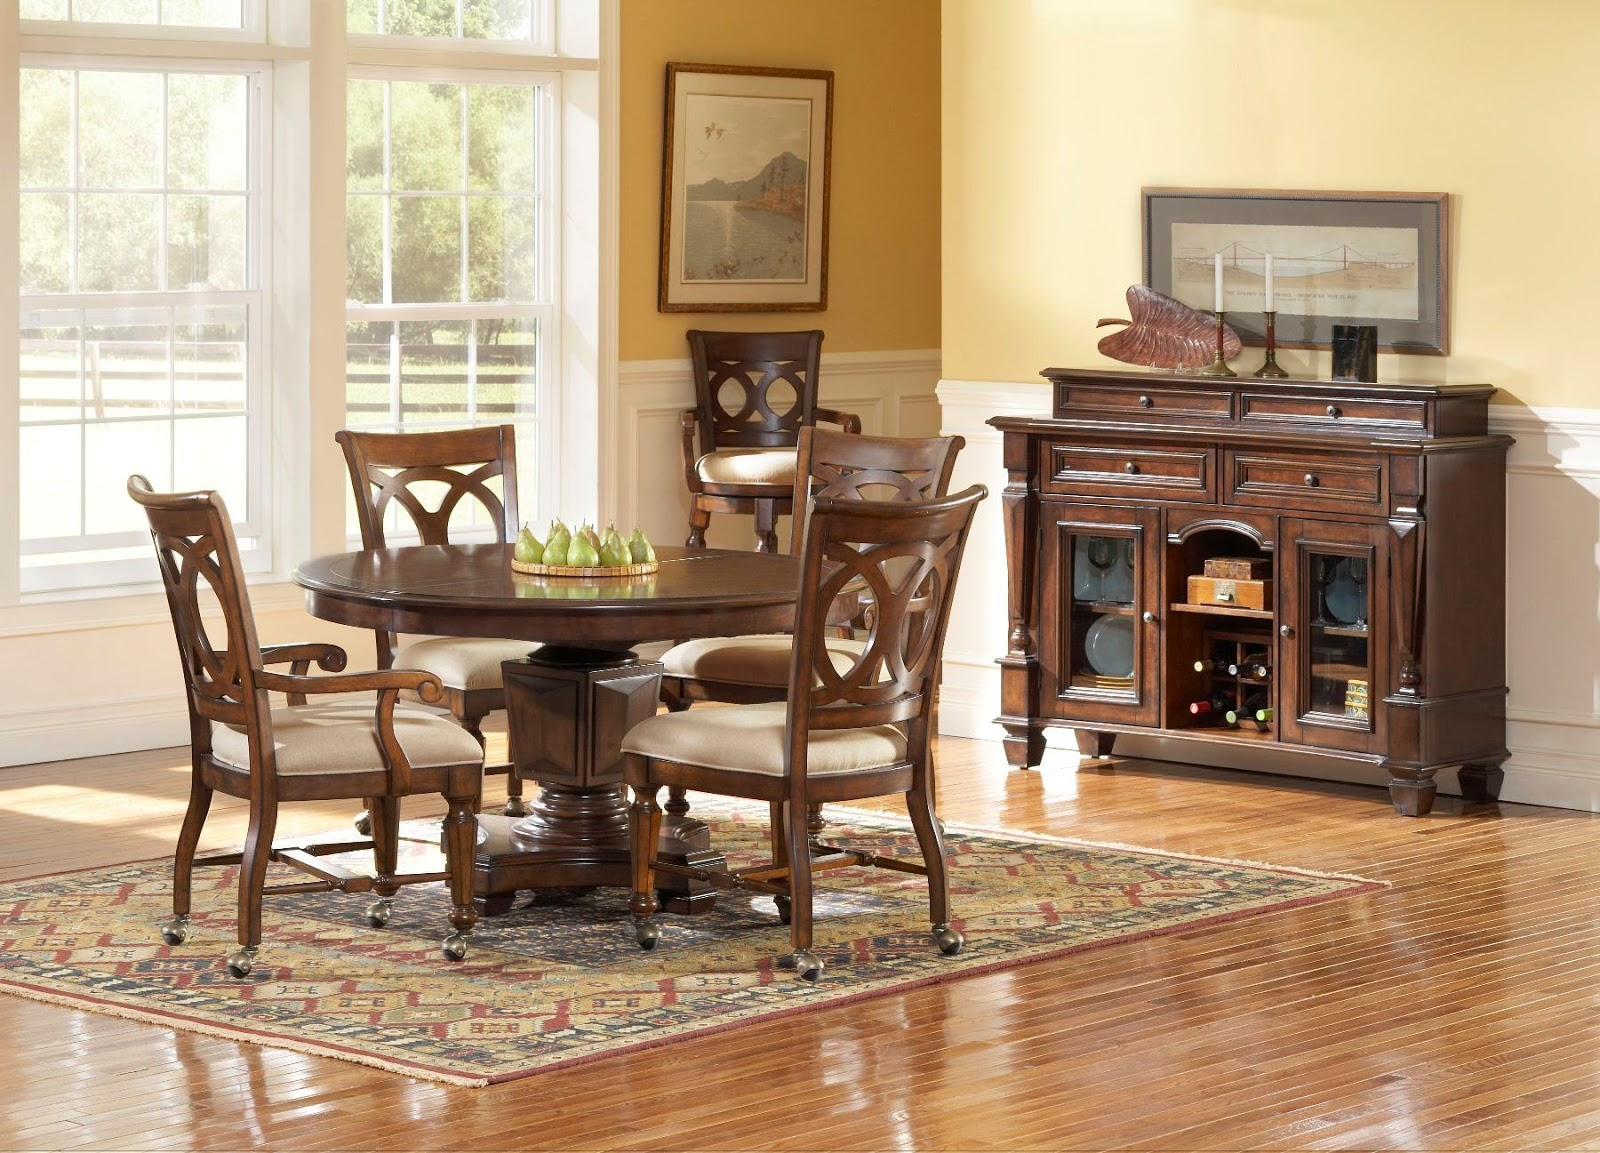 rustic dining room chairs modern bentwood inspirational of home interiors and garden